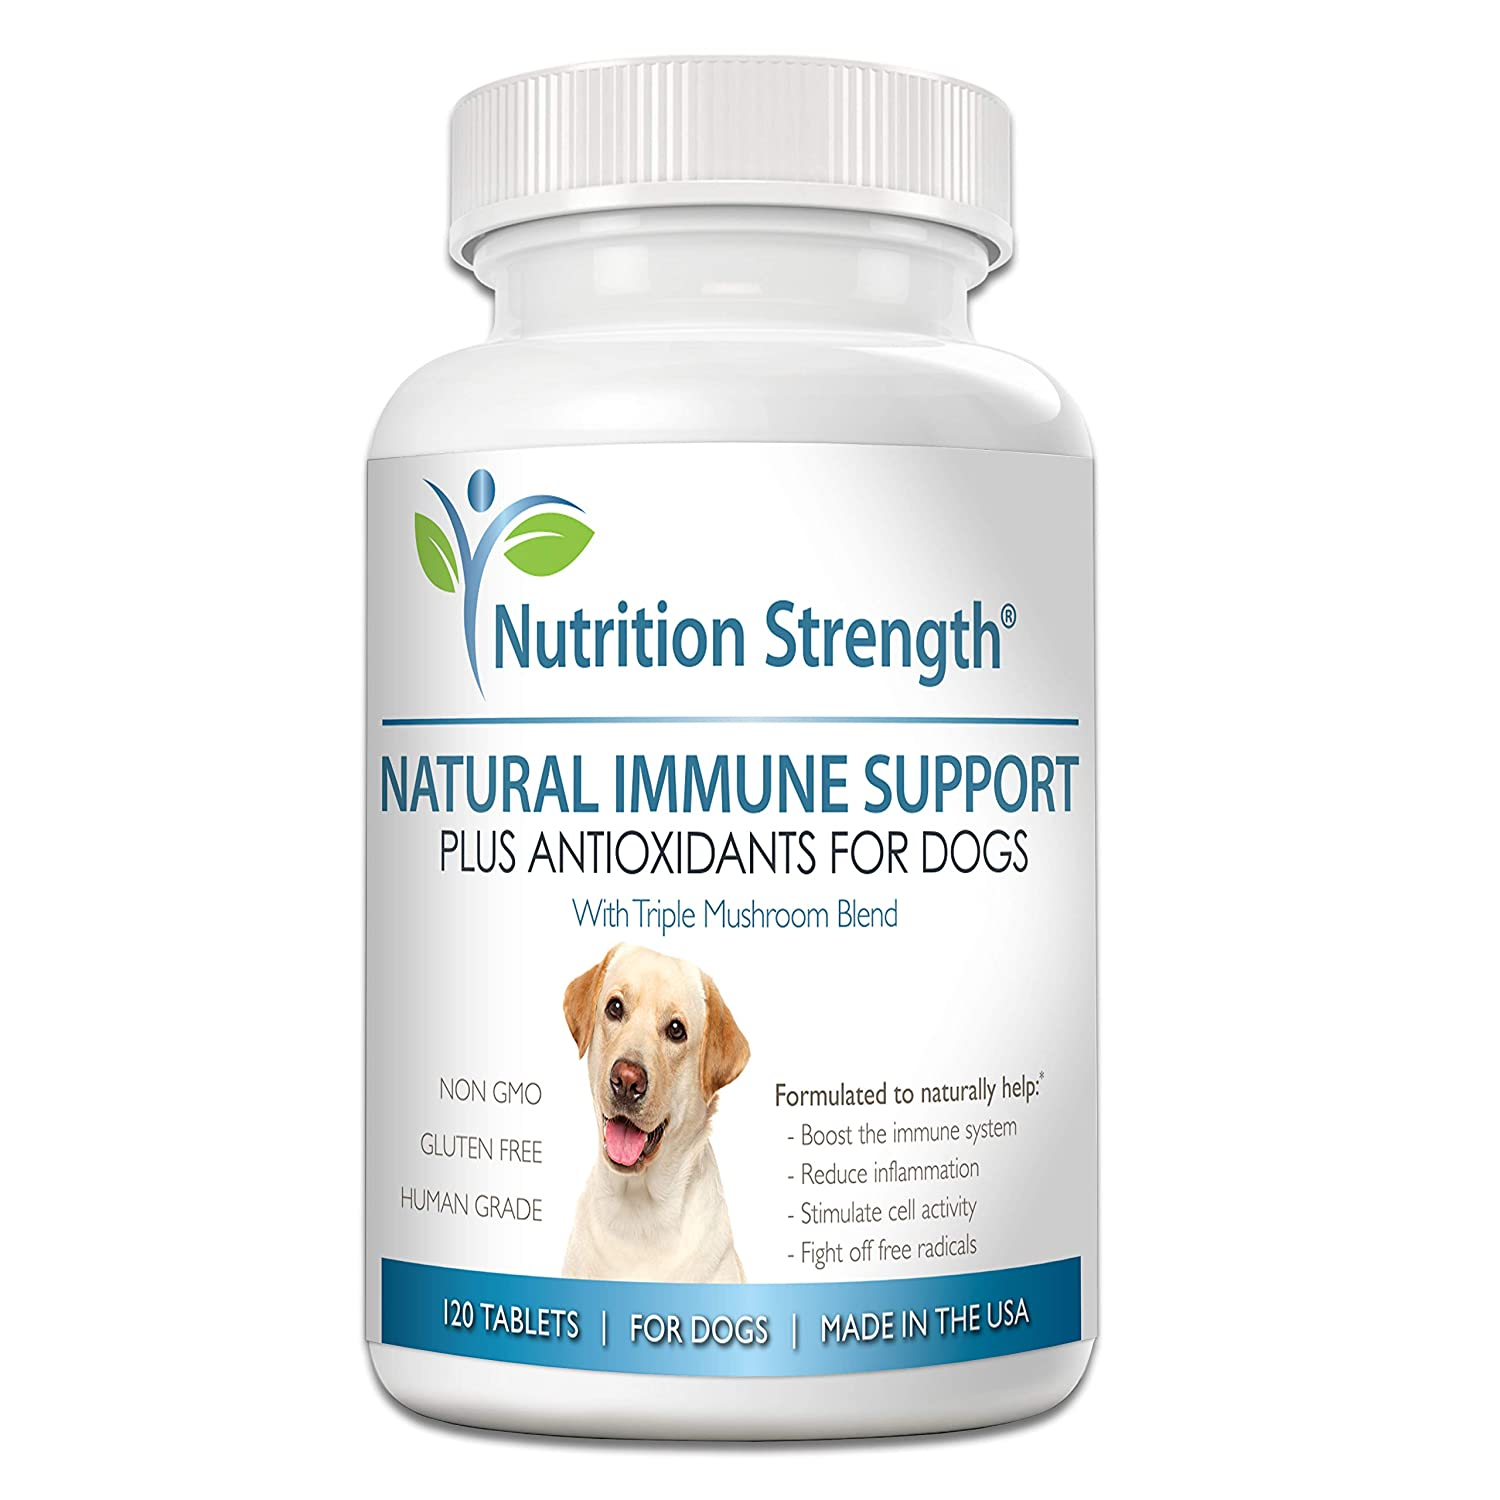 Nutrition Strength Natural Immune Support for Dogs Plus Antioxidant 120 Chewable Tablets